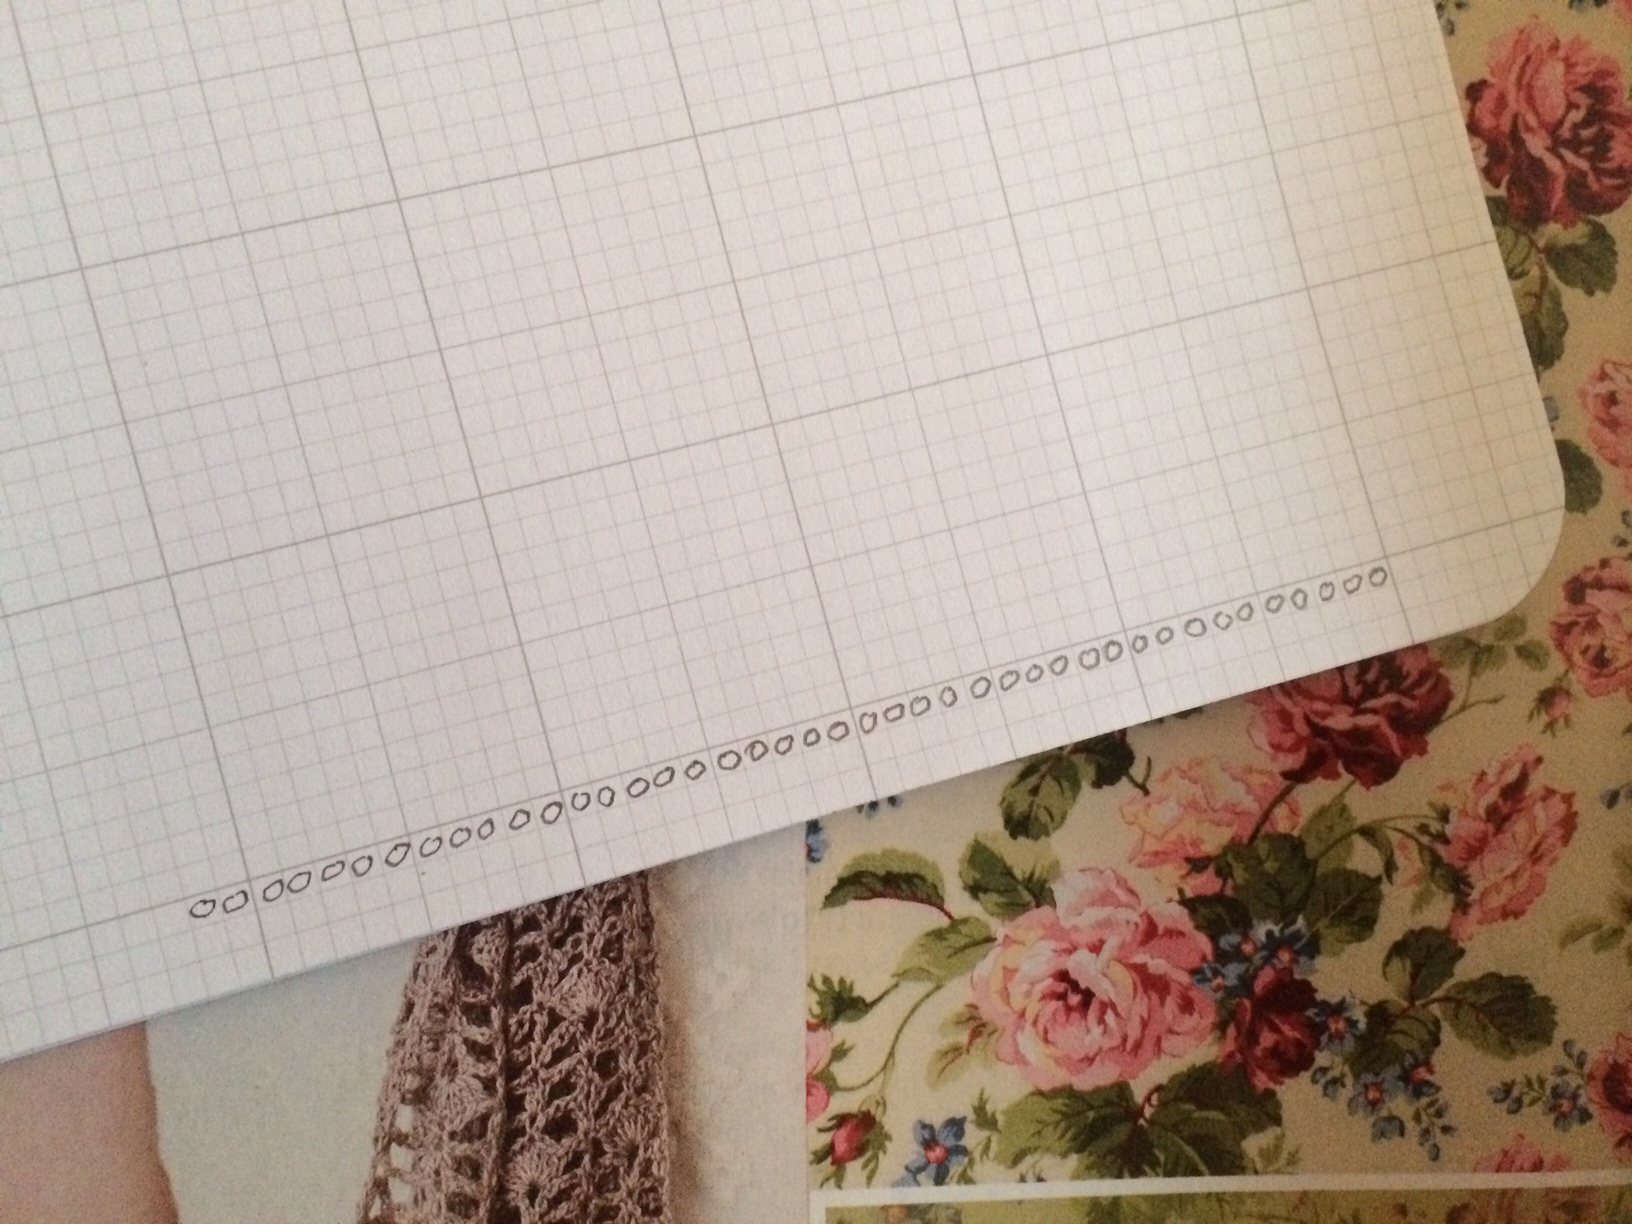 How To Draw A Crochet Stitch Diagram Interweave Pattern My Favorite Tools For Working Up Own Diagrams Are Graph Paper And Nice Fine Point Mechanical Pencil The Helps Keep Rows Evenly Drawn